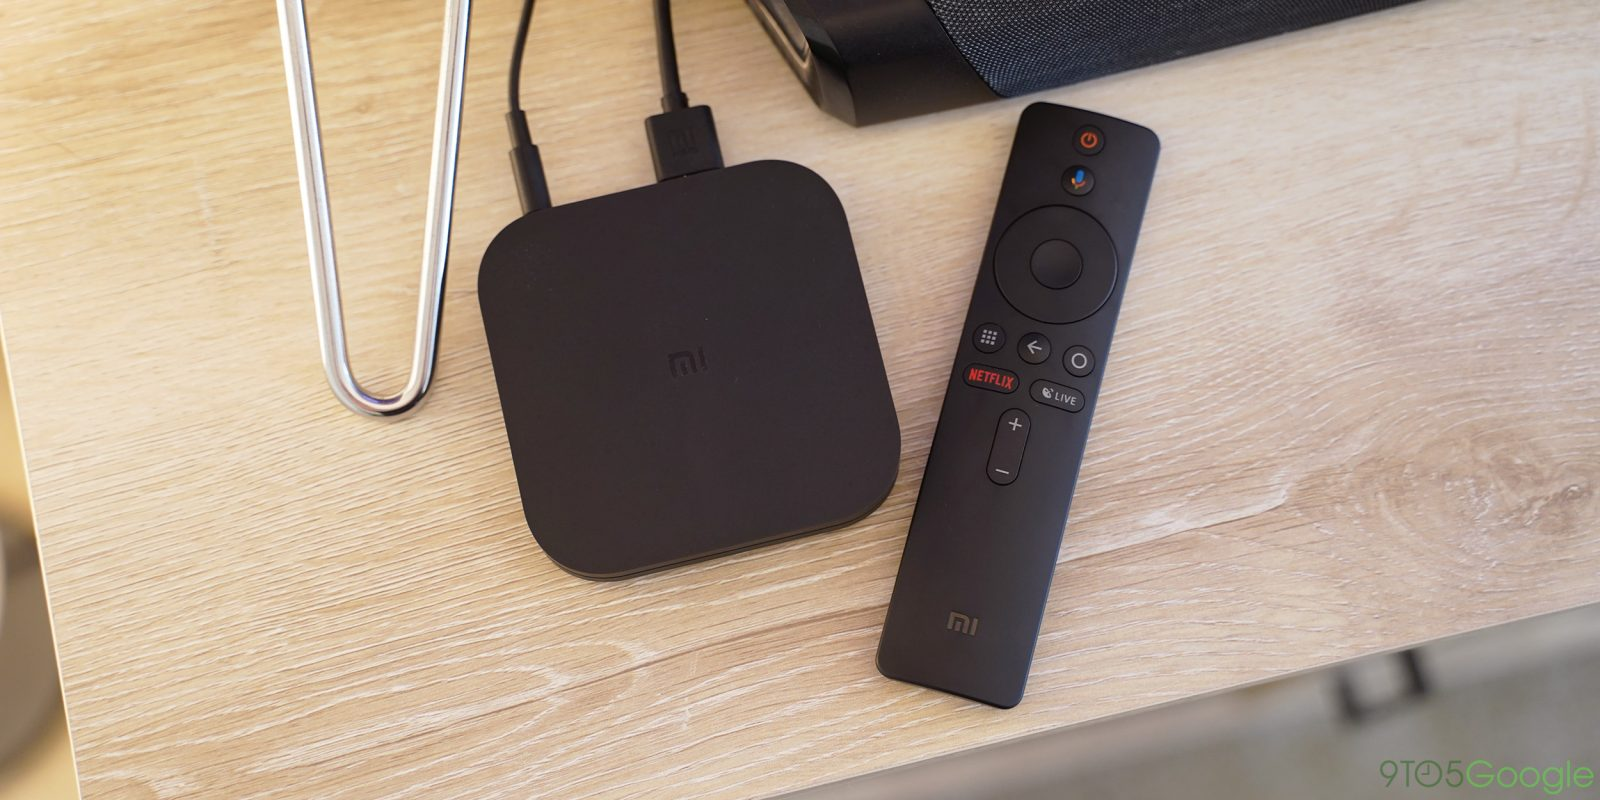 Xiaomi Mi Box S Review: The best Android TV for most users